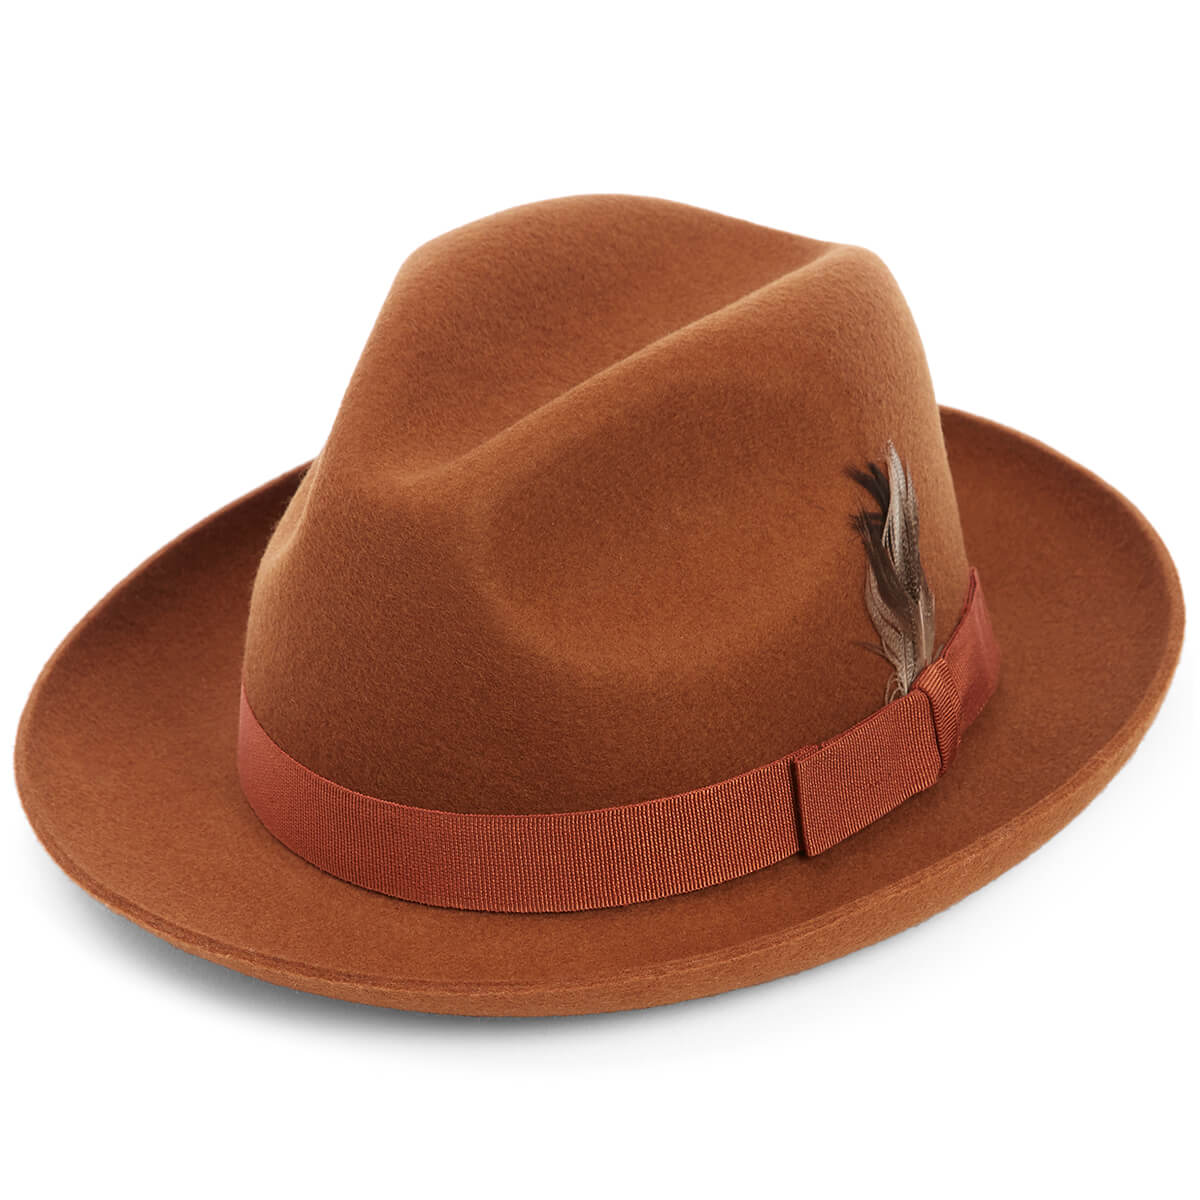 Barbican Wool Felt Trilby Hat - BROWN - size 62